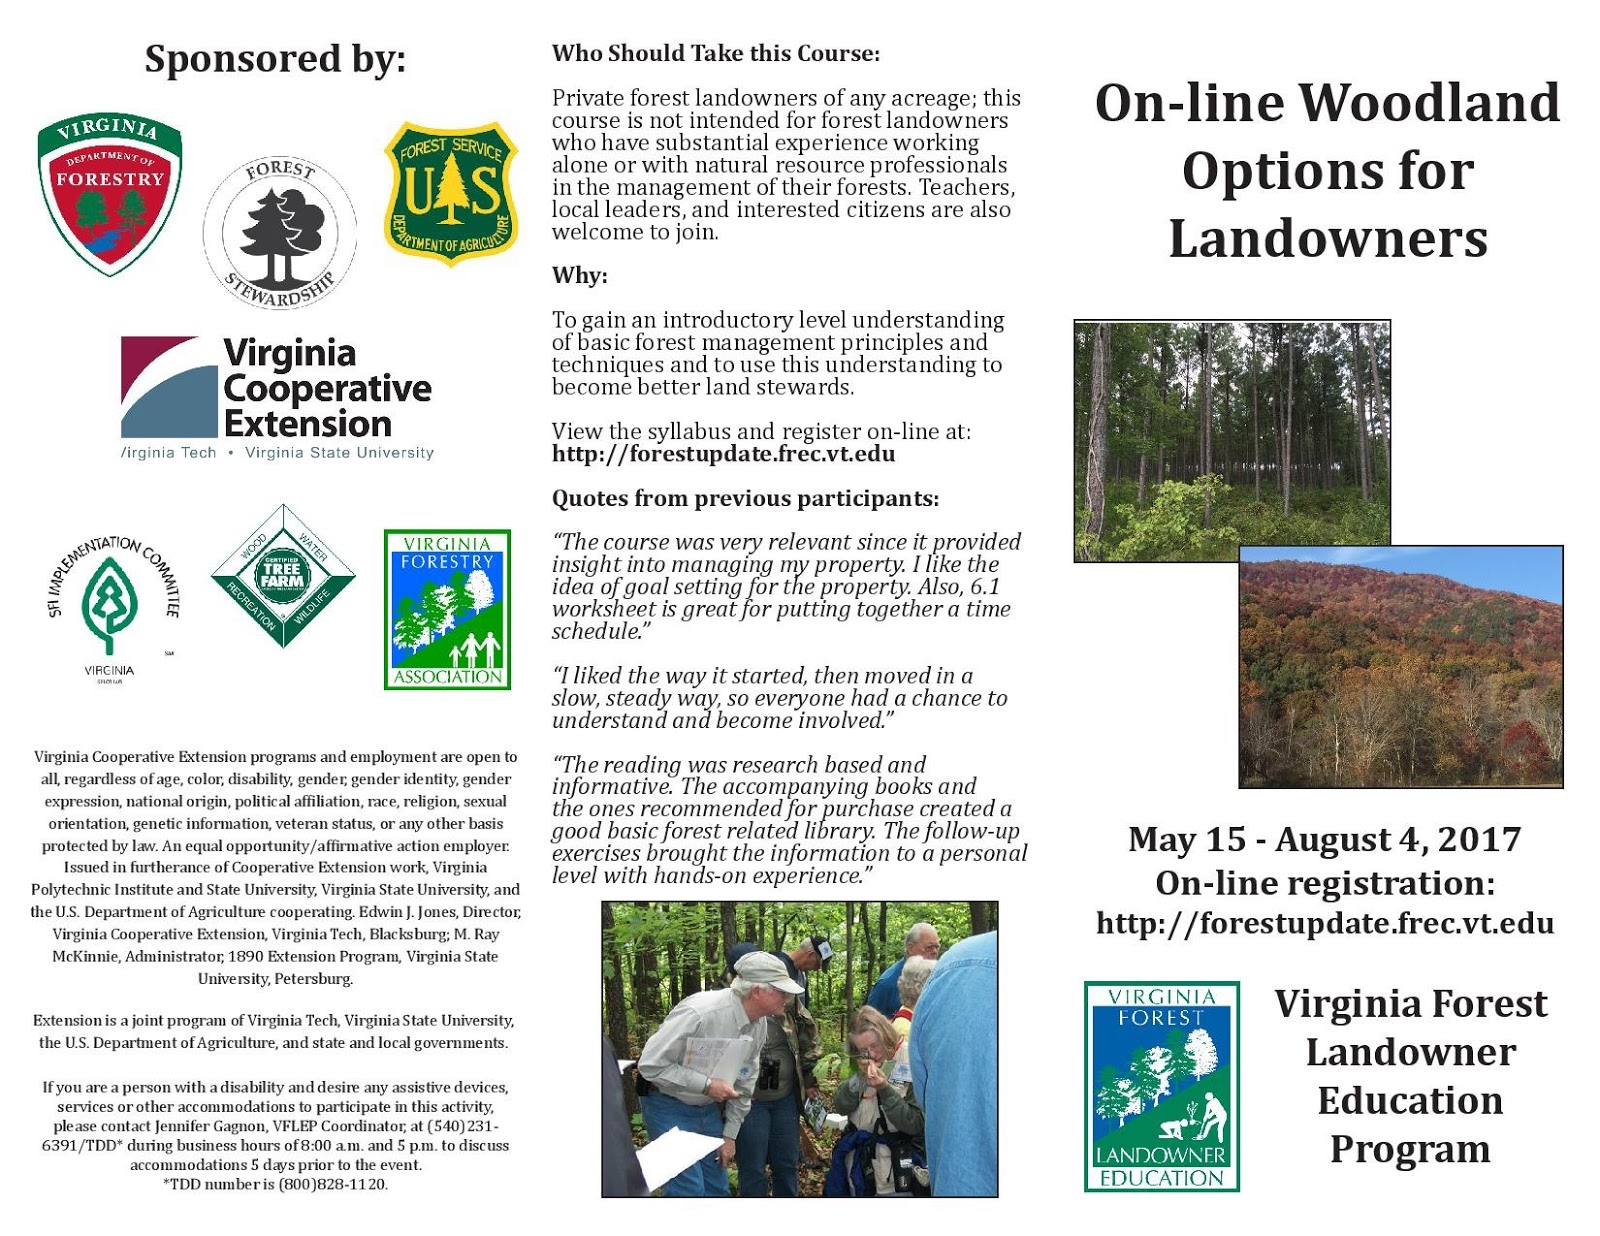 Online Course Offered By The Virginia Forest Landowner Education Program To  Learn About Managing Your Woodland! U2013 May 15 U2013 August 4